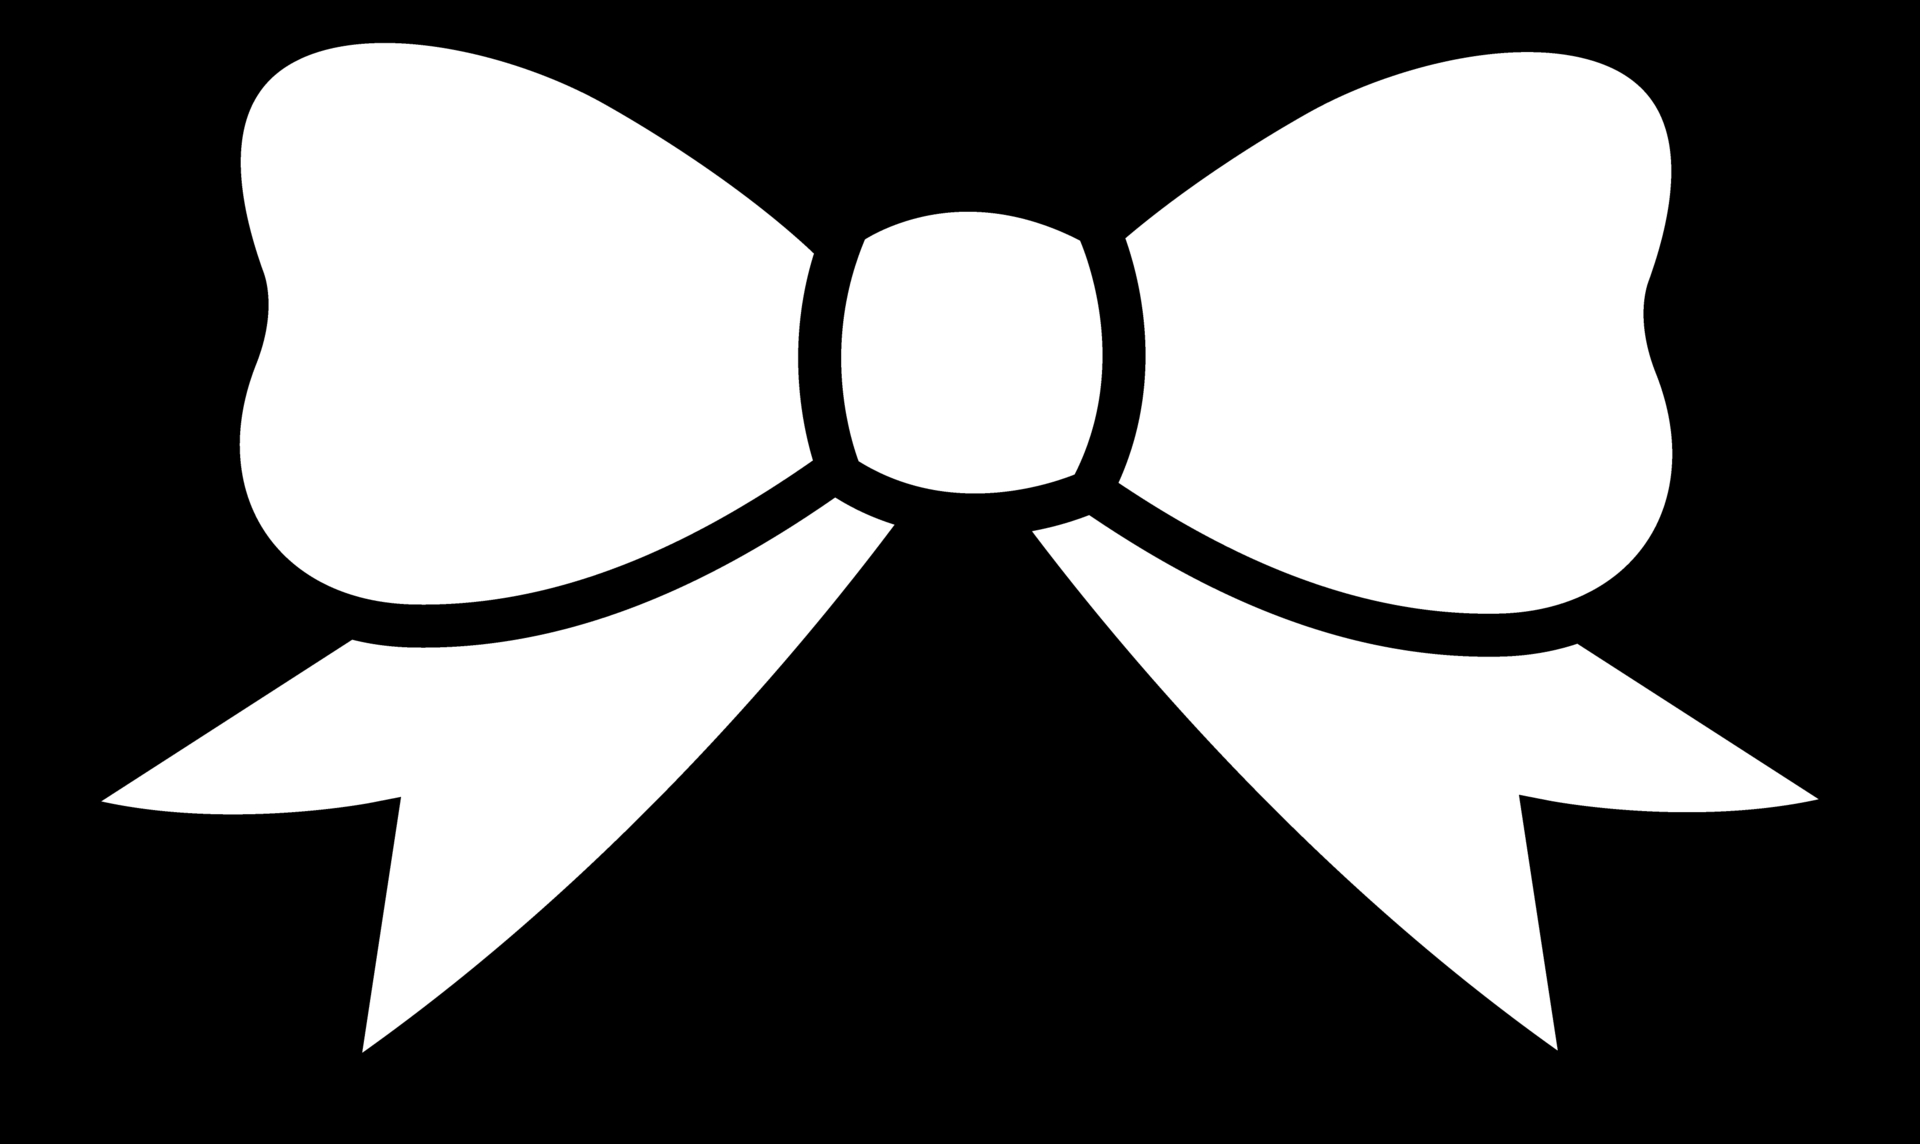 Hair Bow Clip Art Black And White Bow Clipart